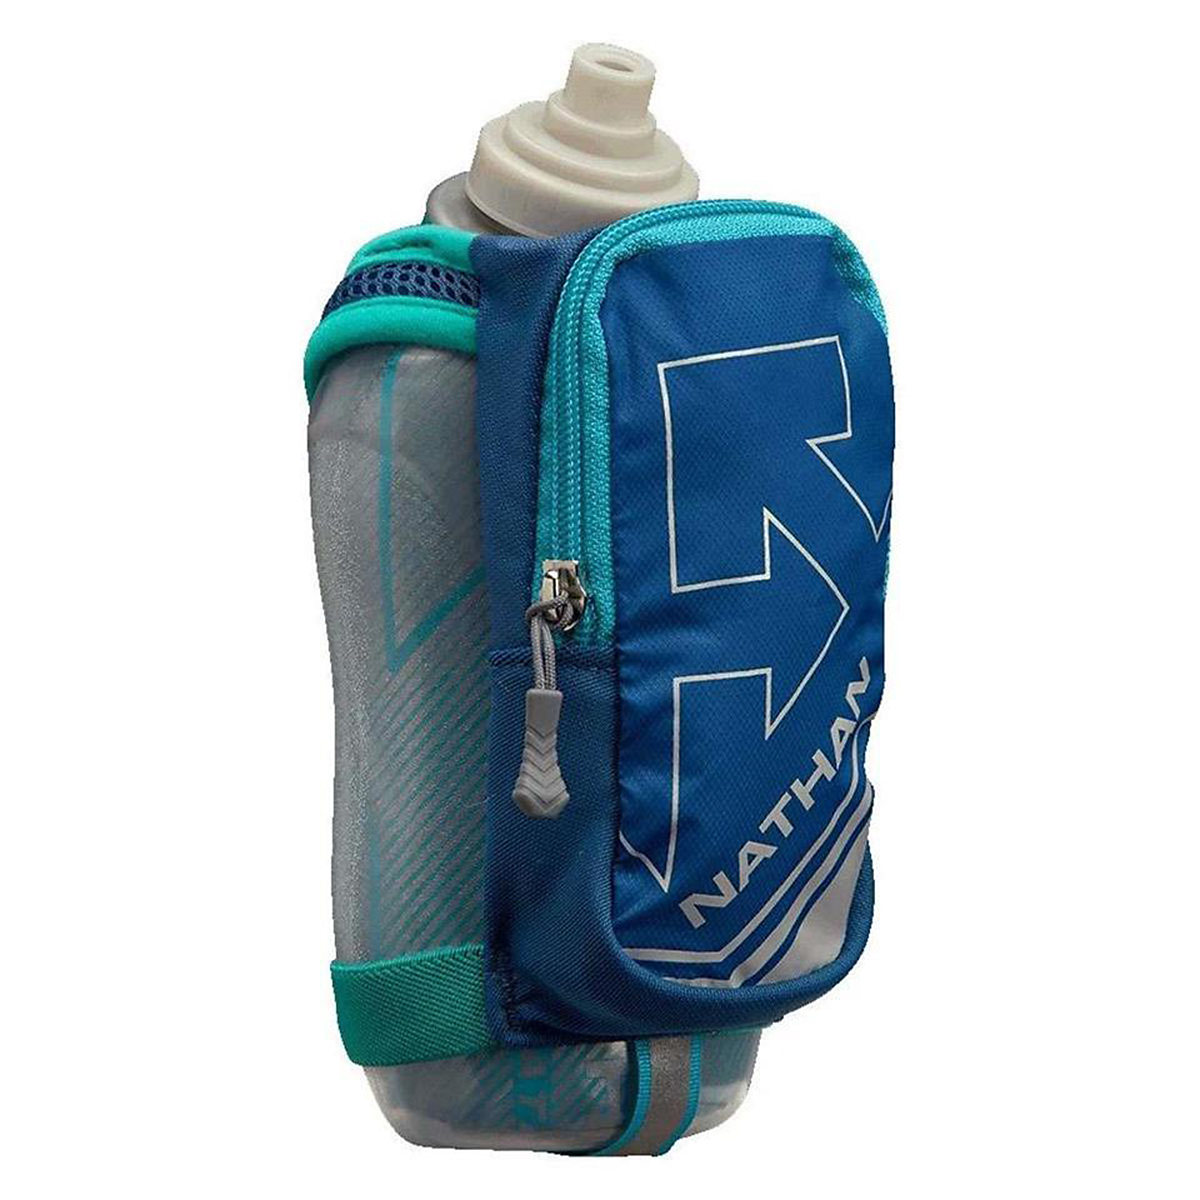 Nathan SpeedDraw Plus Insulated 18oz Water Bottle - Color: Castle Rock/Green - Size: OS, Castle Rock/Green, large, image 1